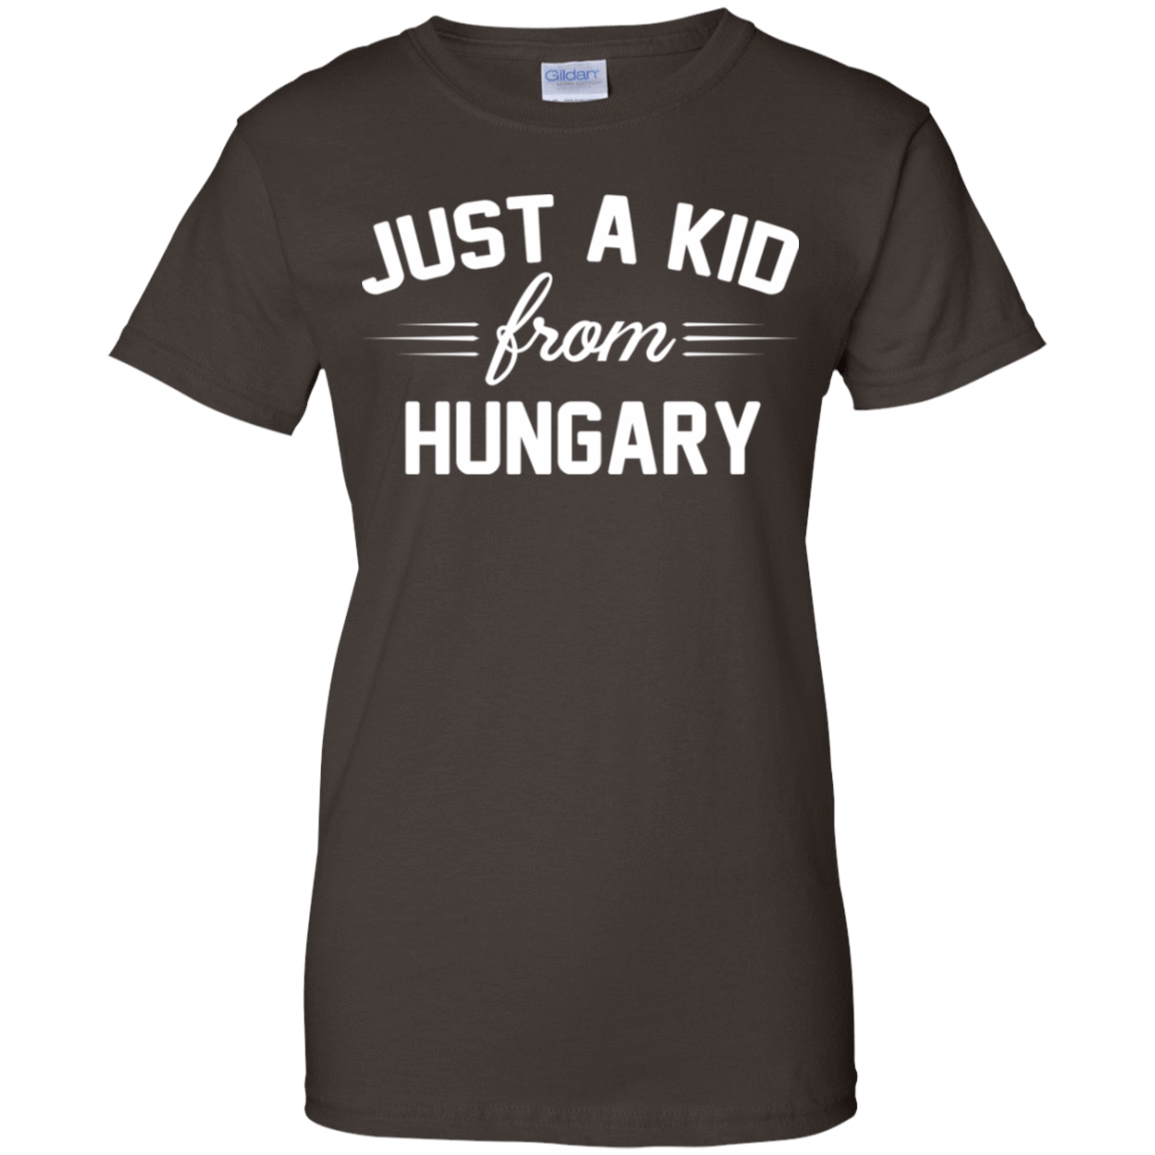 Just a Kid Store | Hungary T-Shirts, Hoodie, Tank 939-9251-72091617-44702 - Tee Ript